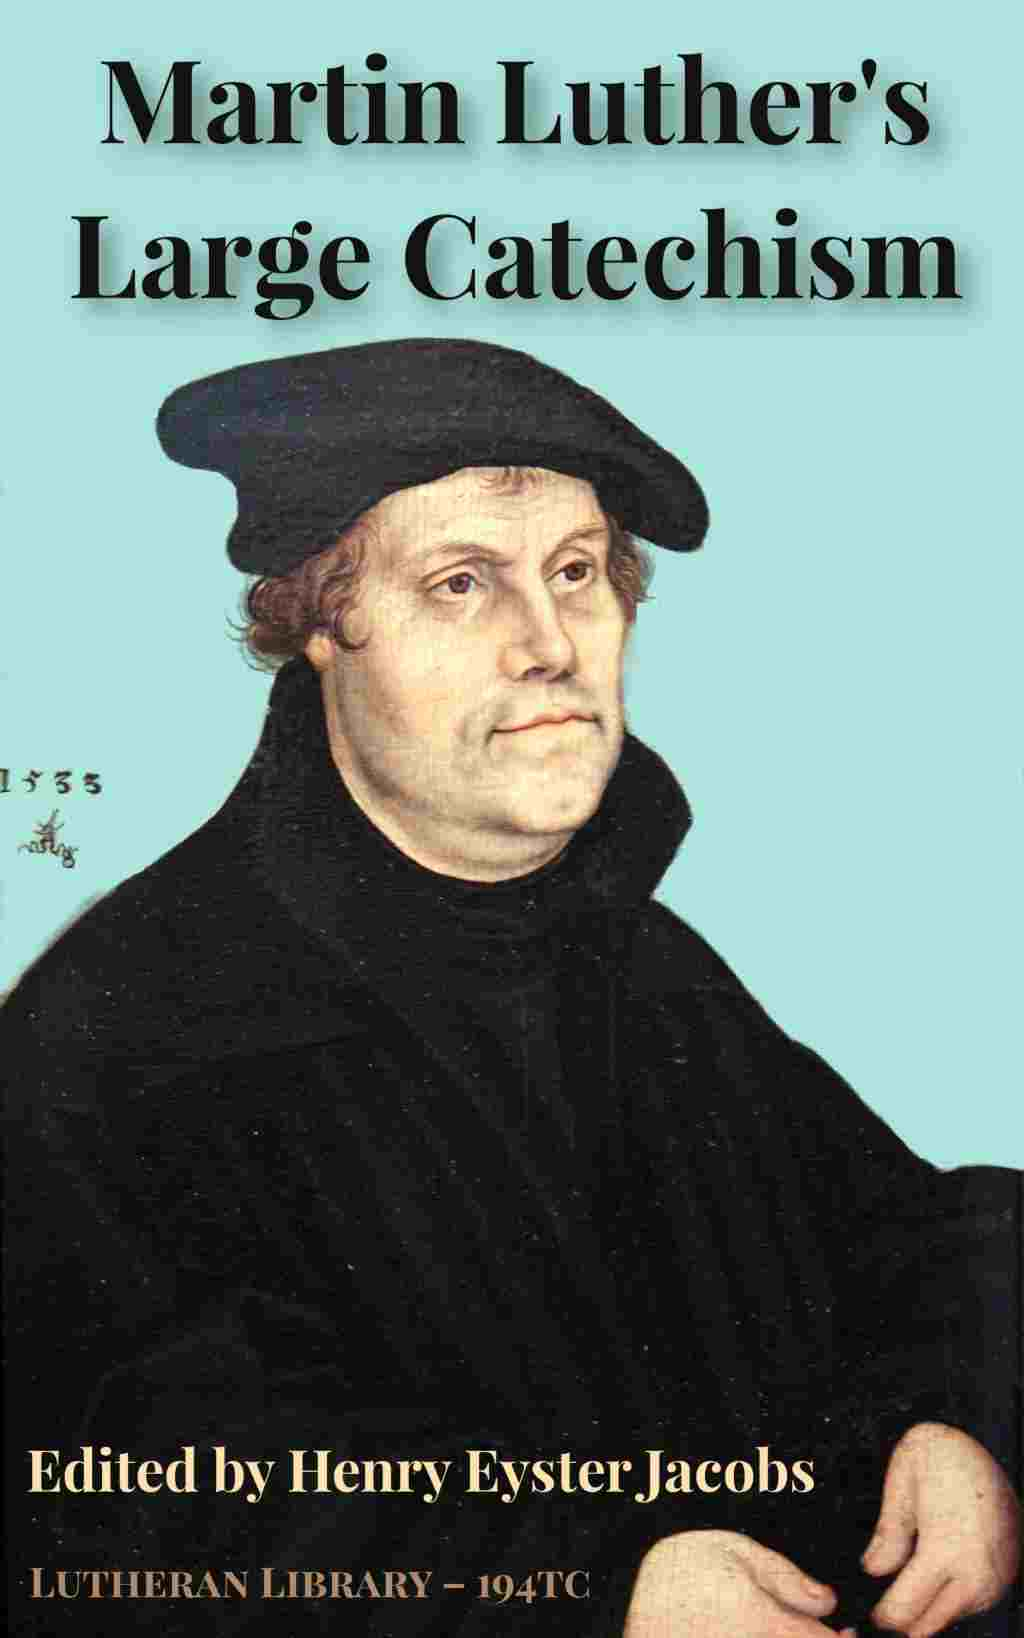 Martin Luther's Large Catechism translated by Henry Eyster Jacobs